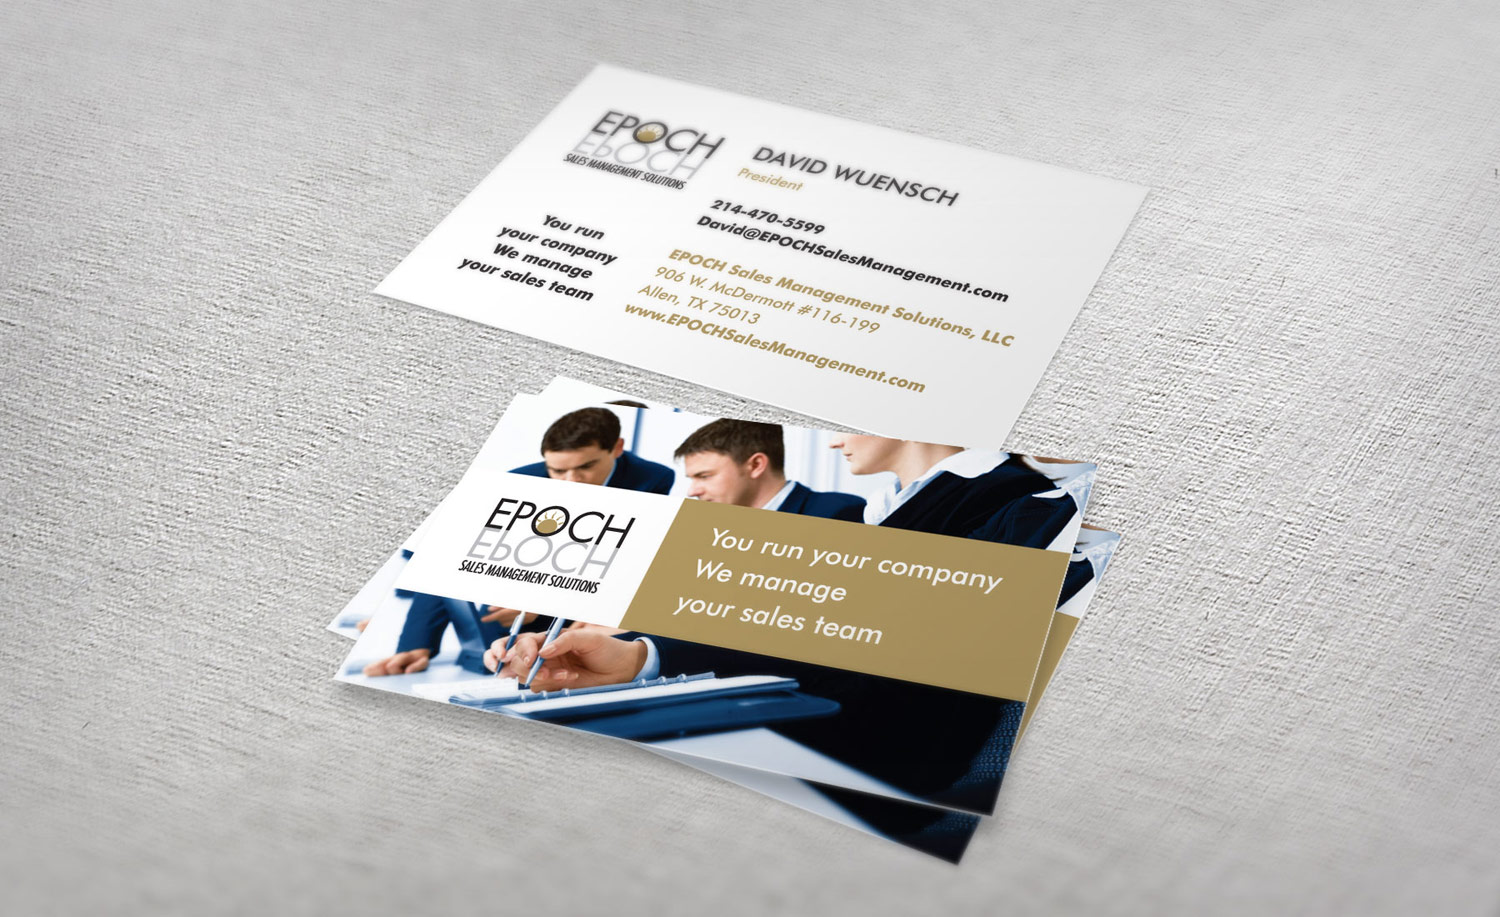 Epoch sales management business cards pr incorporated view larger image colourmoves